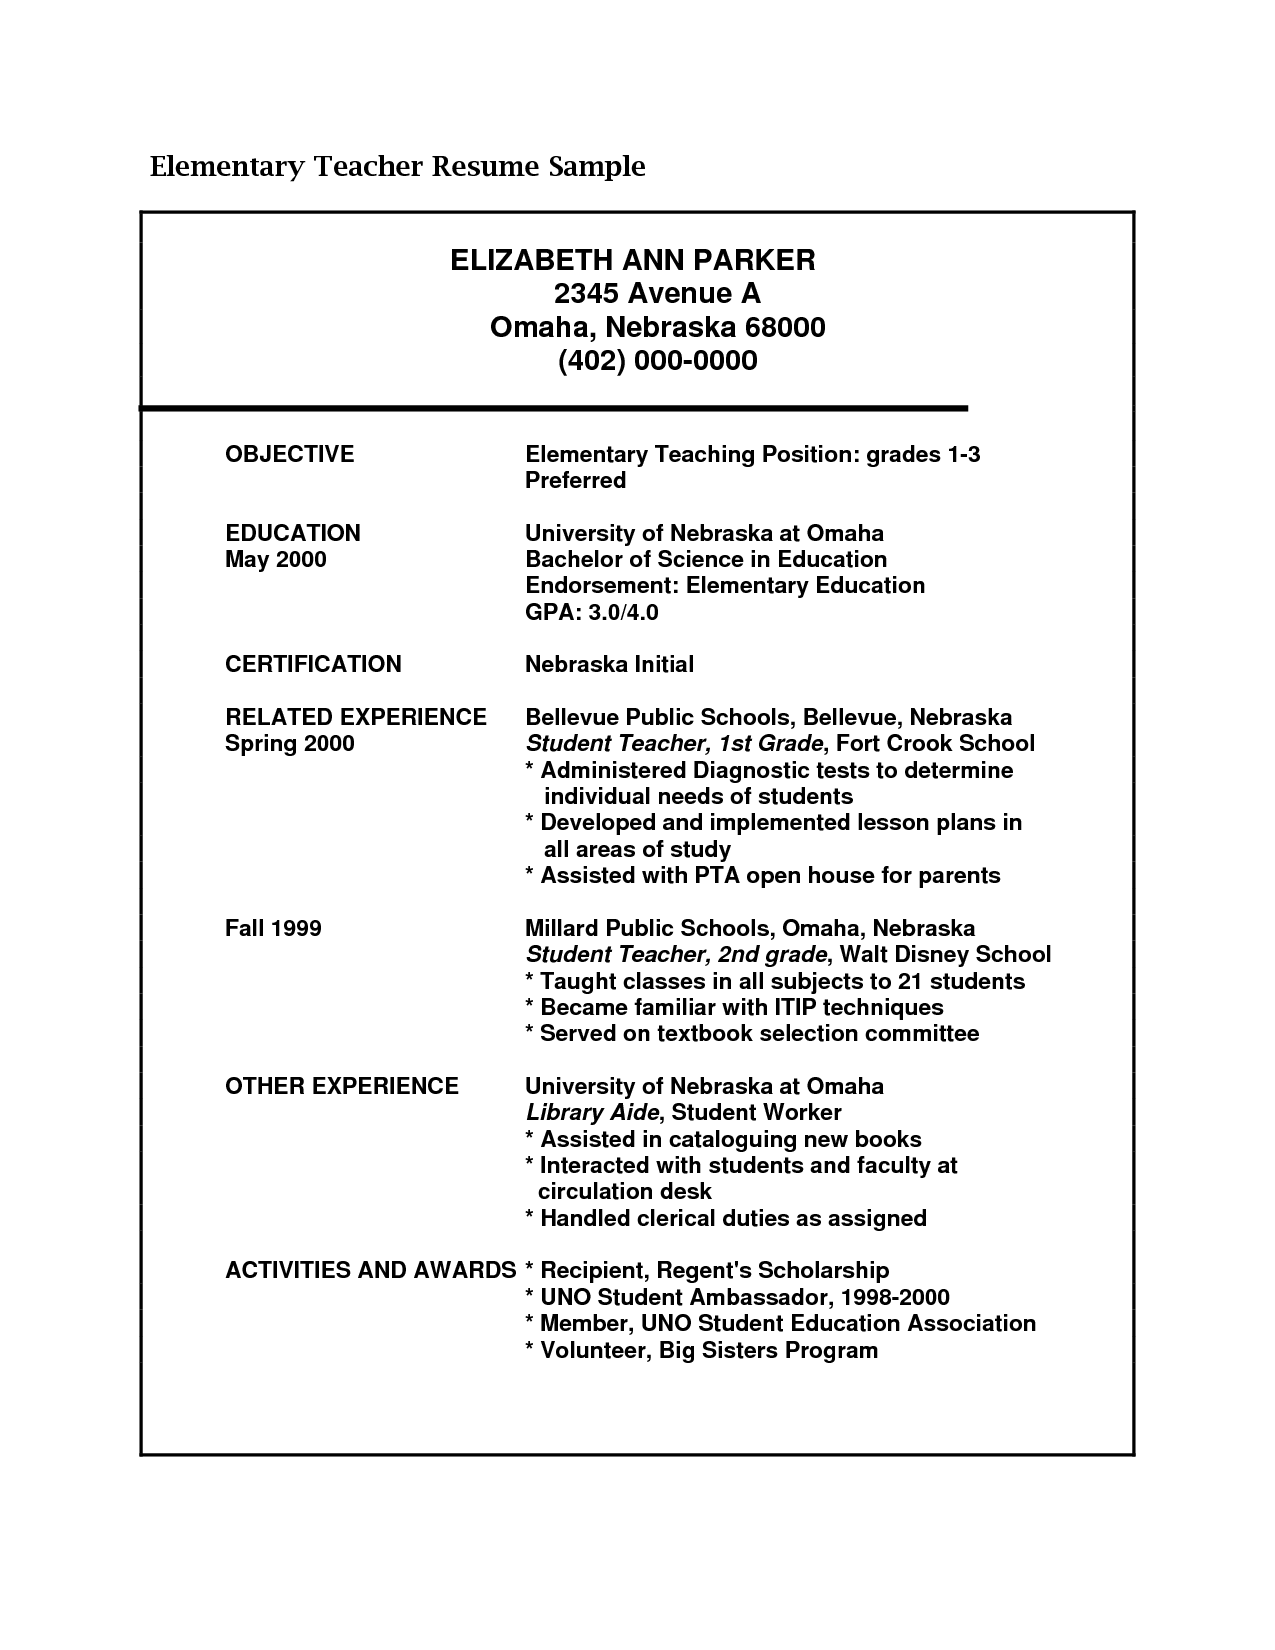 Resume Objective Statement For Teacher   Http://www.resumecareer.info/  Biodata Format For Teacher Job